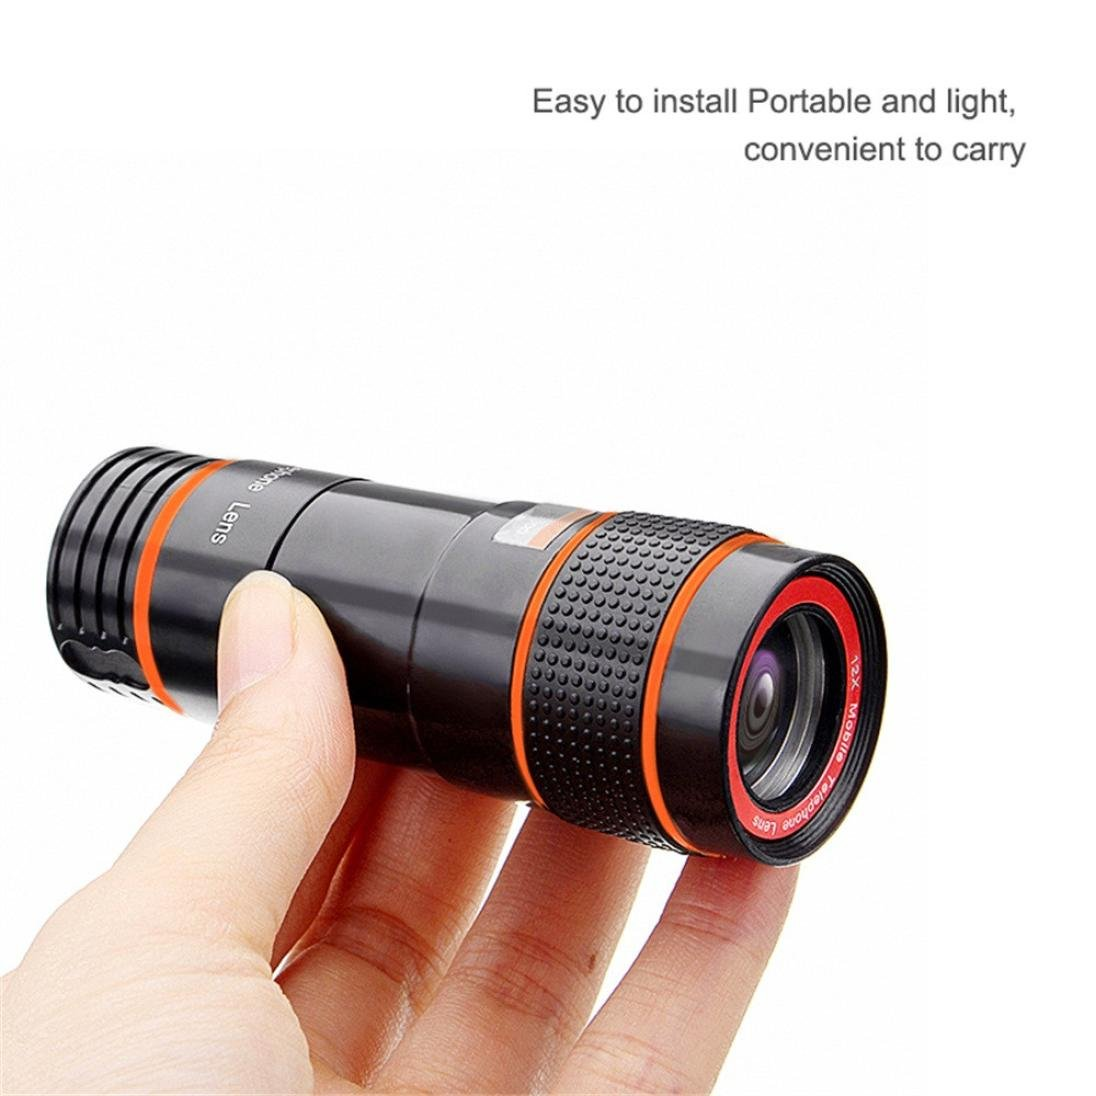 Hot 12X Zoom Telephoto Cell Phone Camera Lens, Tuscom Zoom Telephoto Universal Clip On Lens Kit for iPhone 8/7/6S/6 Plus/5/4,Samsung,Samsung, Google, LG, Android and Other Phones (Black) by Tuscom (Image #6)